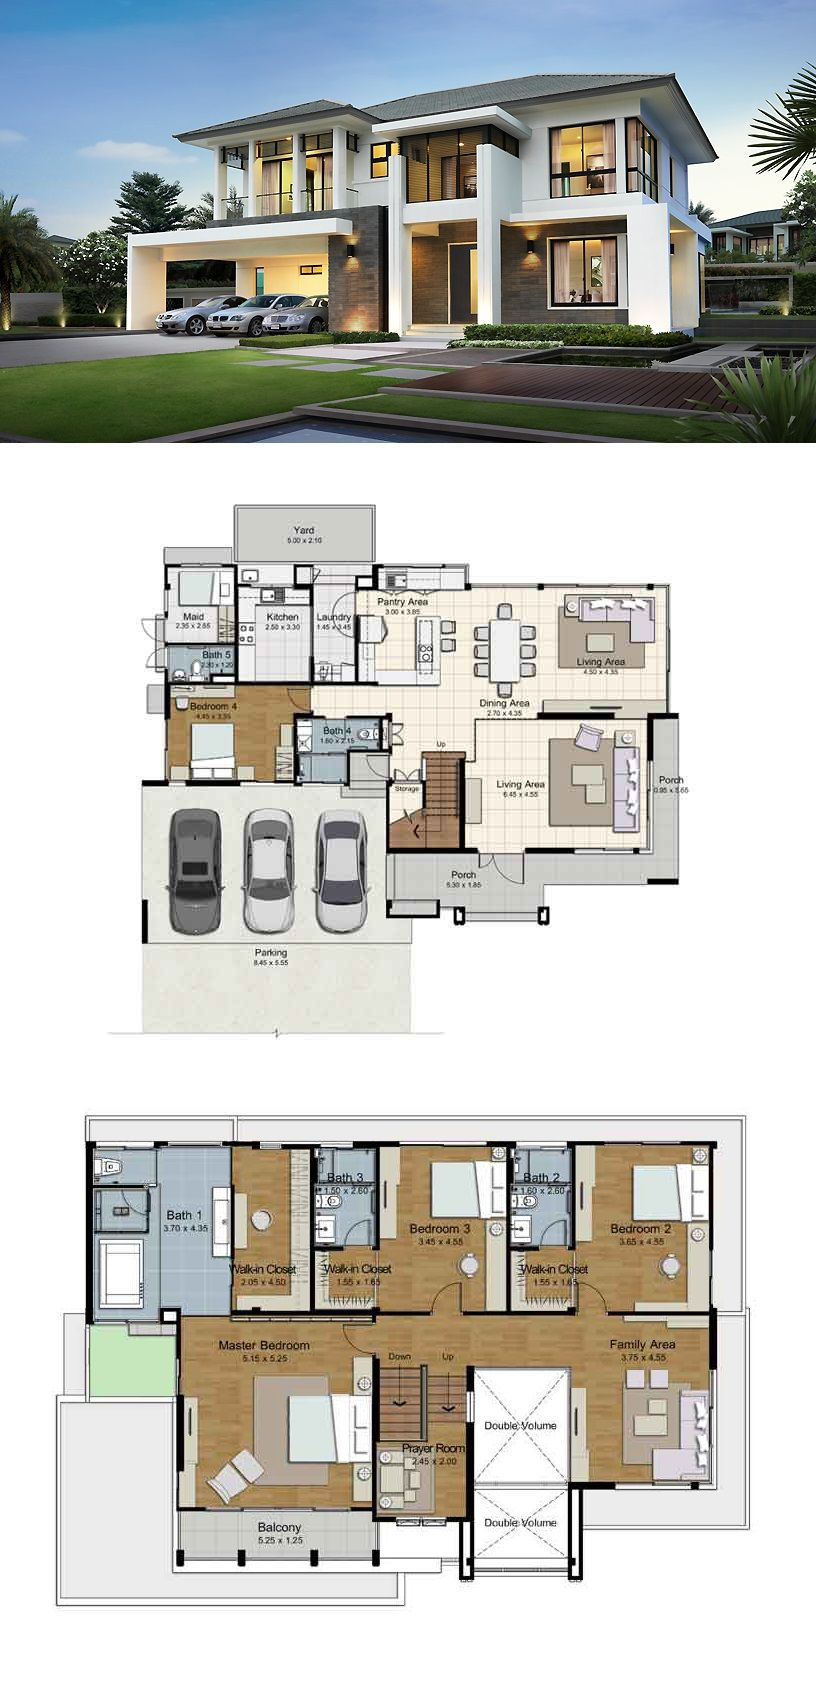 Sample Floor Plan For House Modern New in House Designerraleigh kitchen